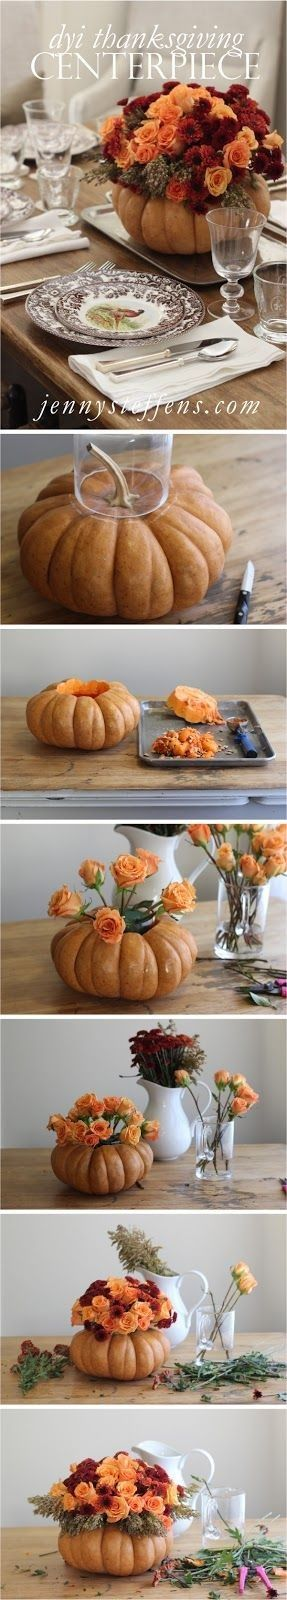 2014 diy Thanksgiving pumpkin centerpiece tutorial - bouquets, table decorations  #2014 #Thanksgiving